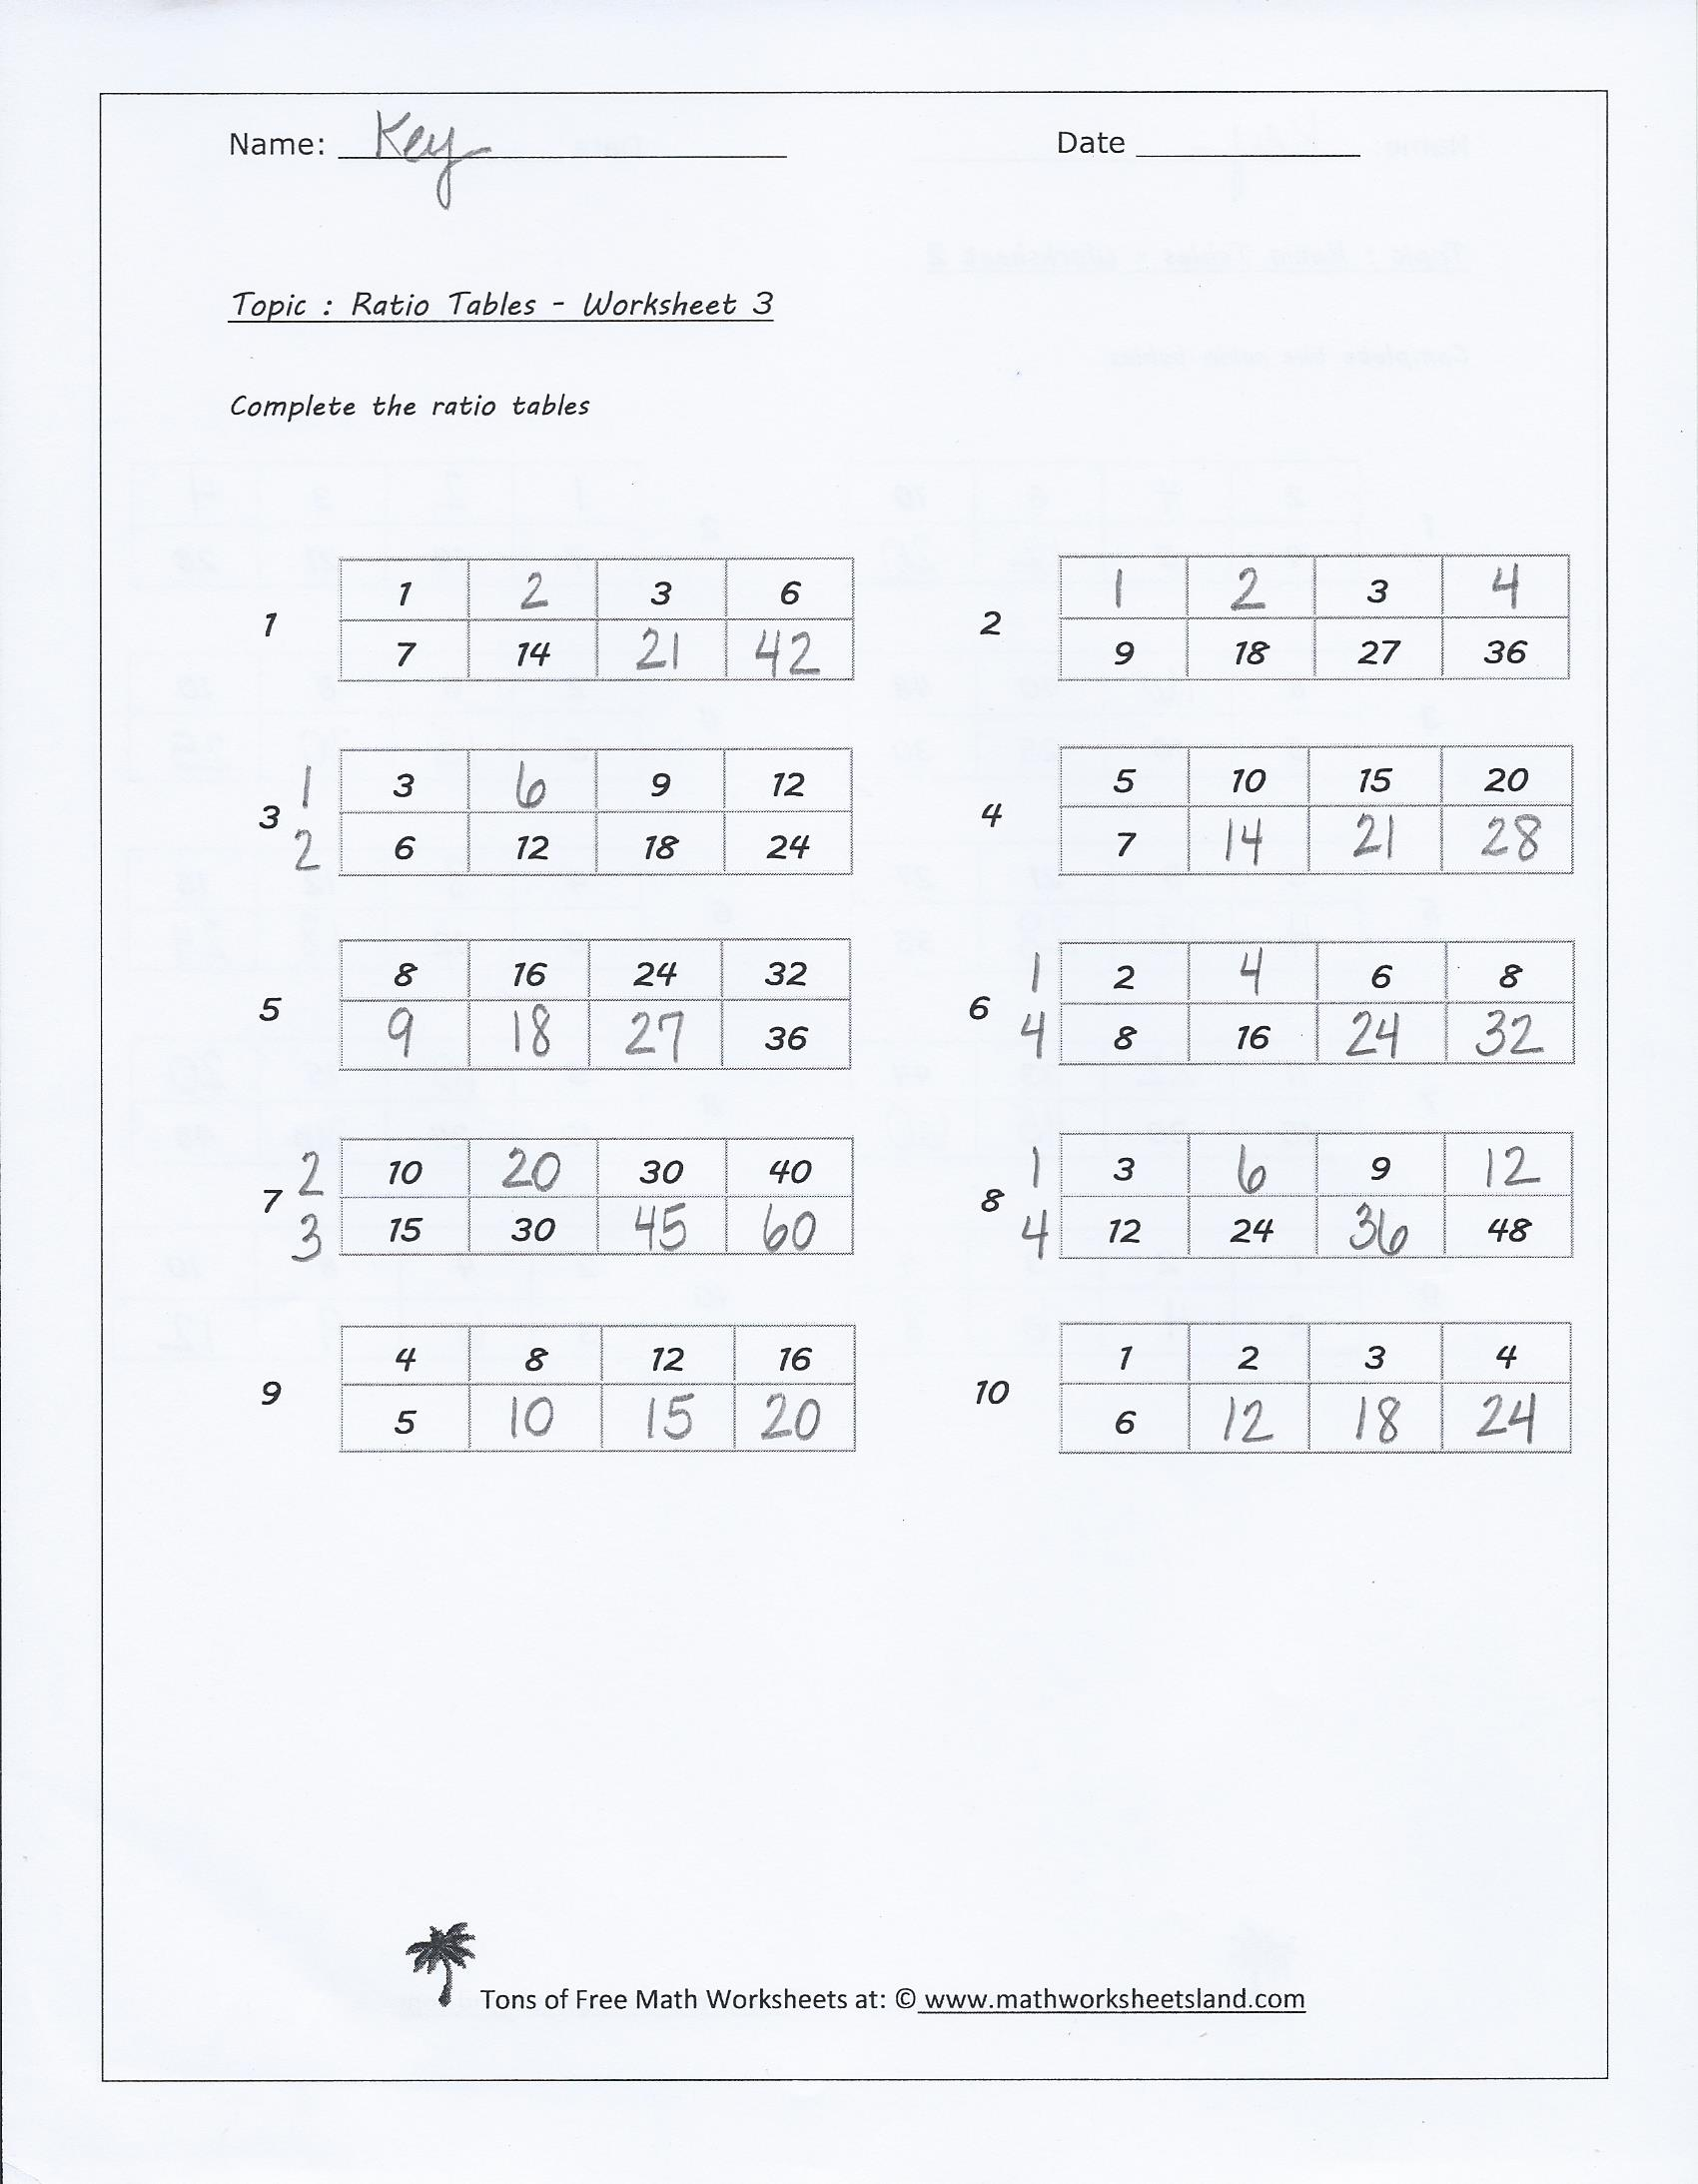 Printables Ratio Table Worksheets Messygracebook